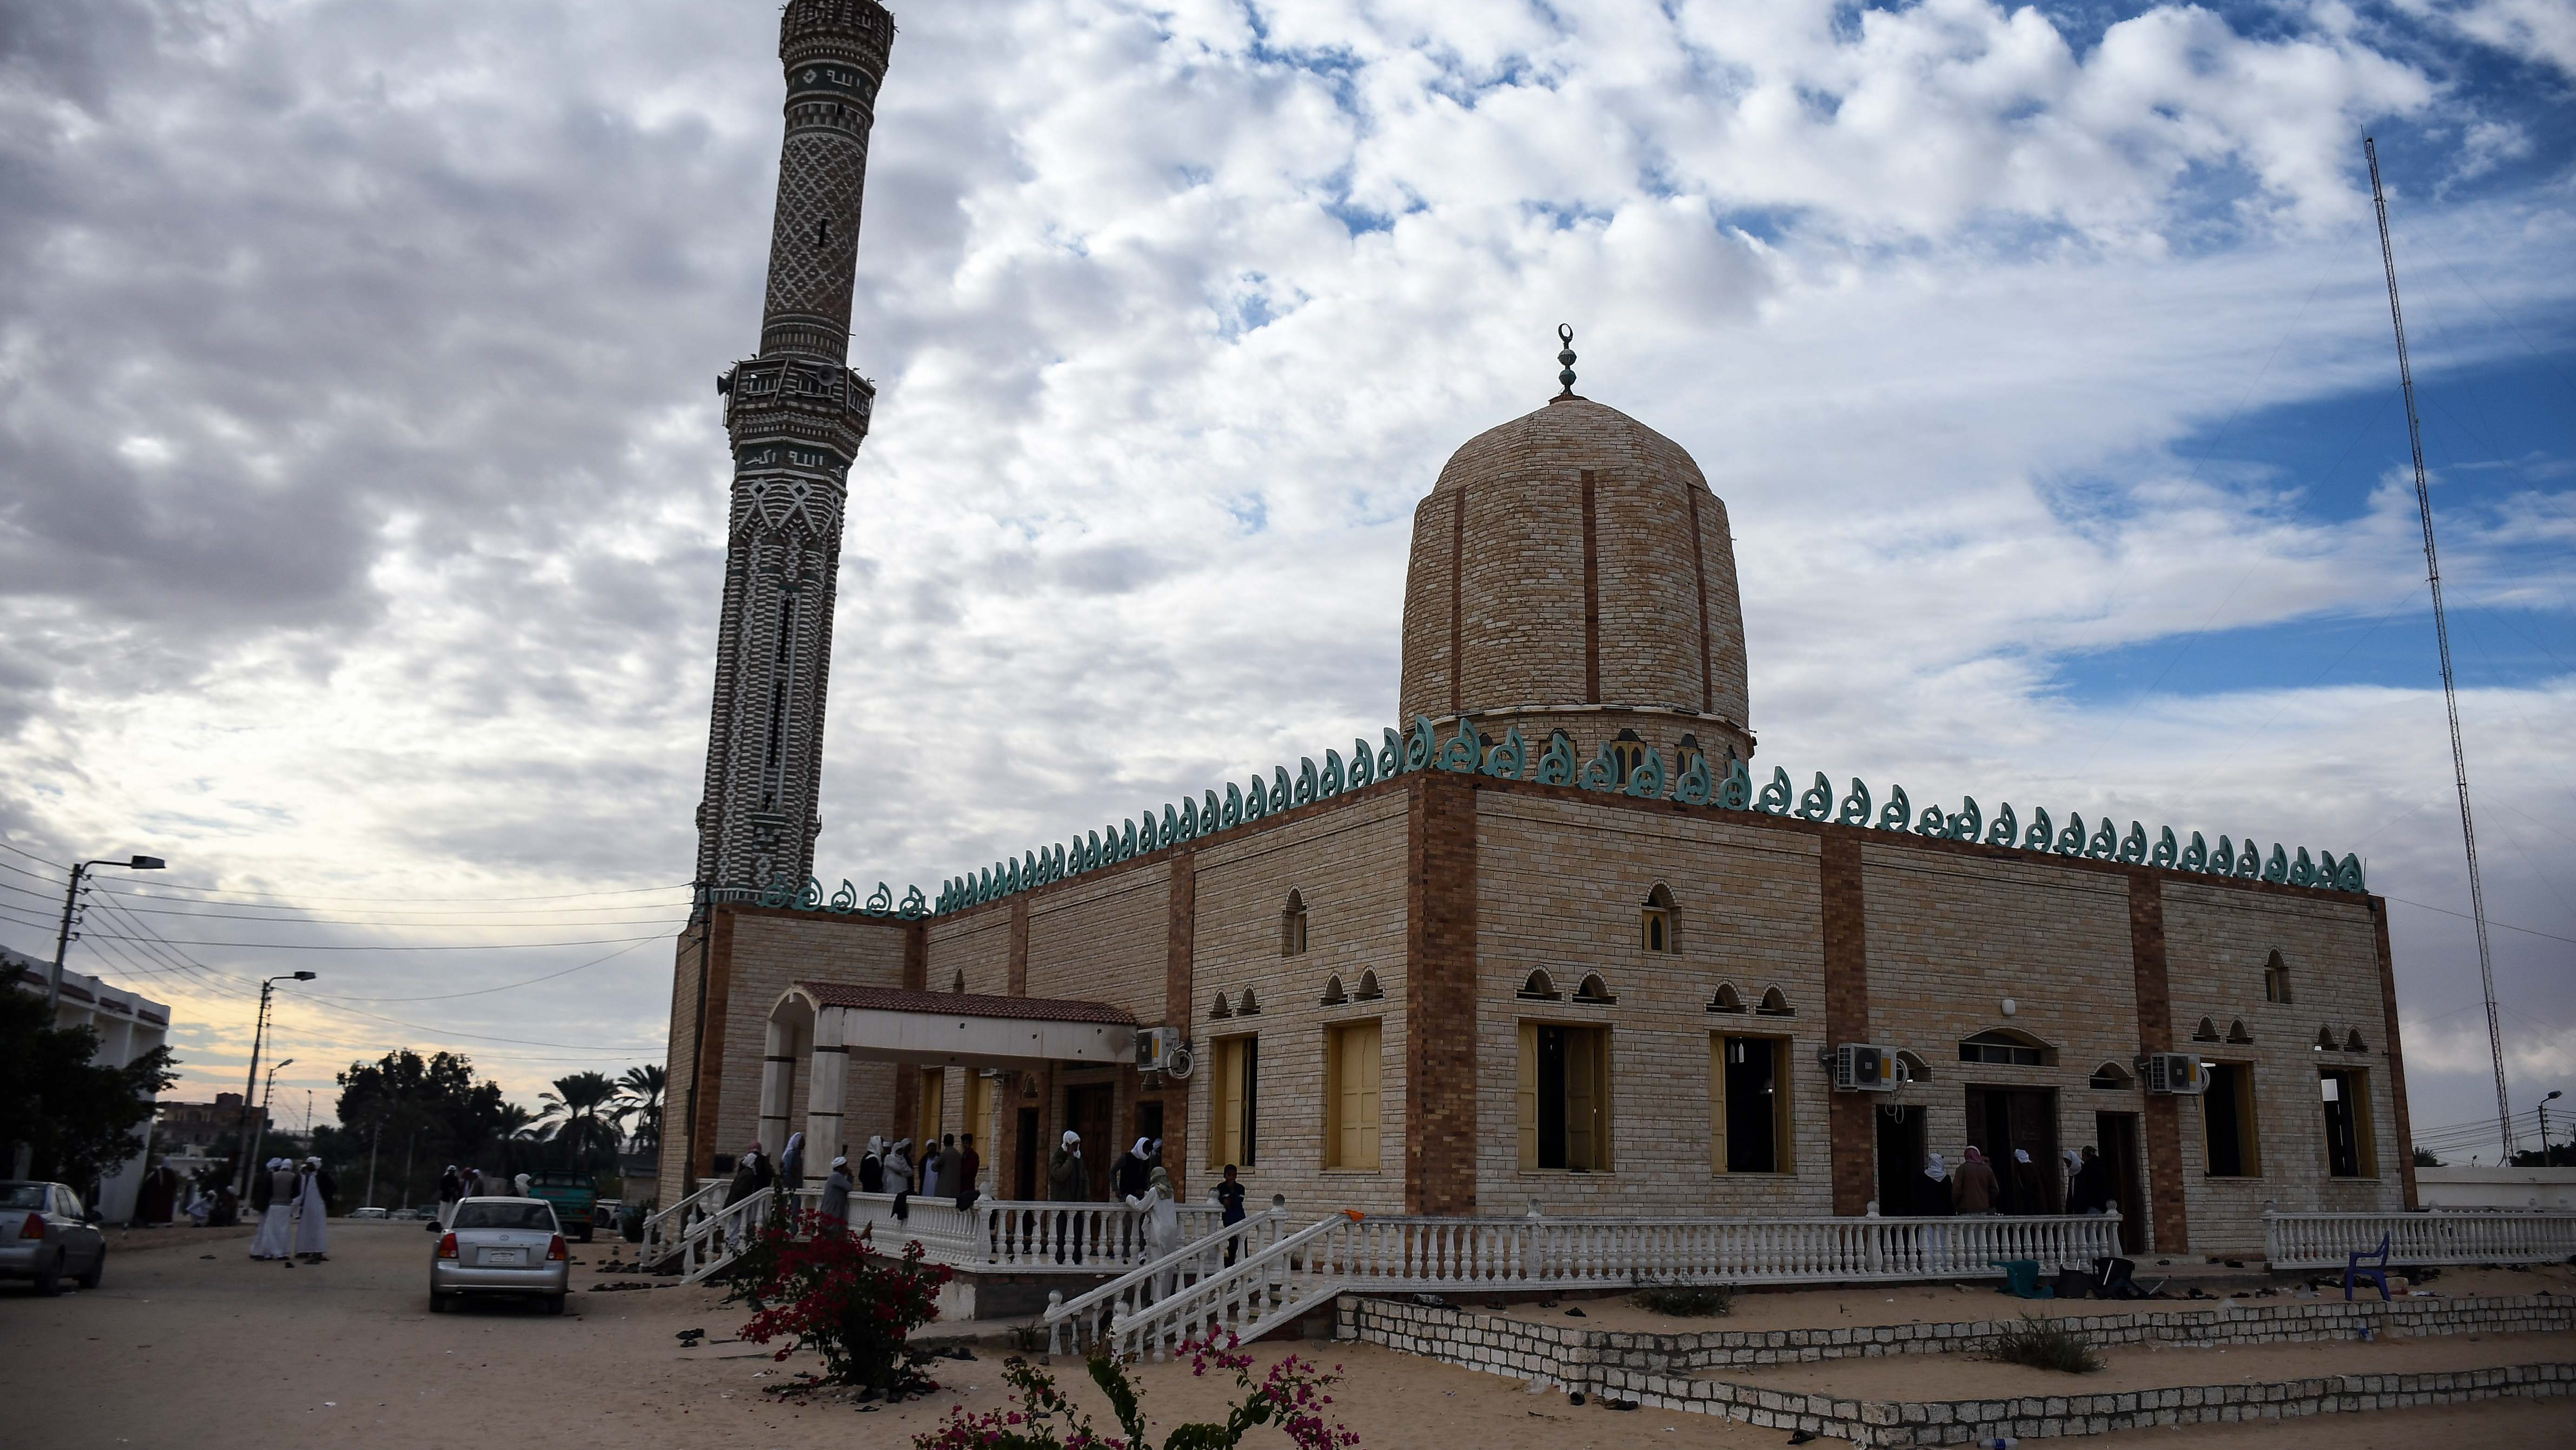 epa06349883 An exterior view of the Al-Rawda mosque a day after the mosque was attacked in the northern city of Arish, Sinai Peninsula, Egypt, 25 November 2017. According to reports, at least 270 people were killed and 90 injured after a bomb was detonated at a mosque and fire opened on worshippers in the Sinai town of Bir al-Abd, near Arish.